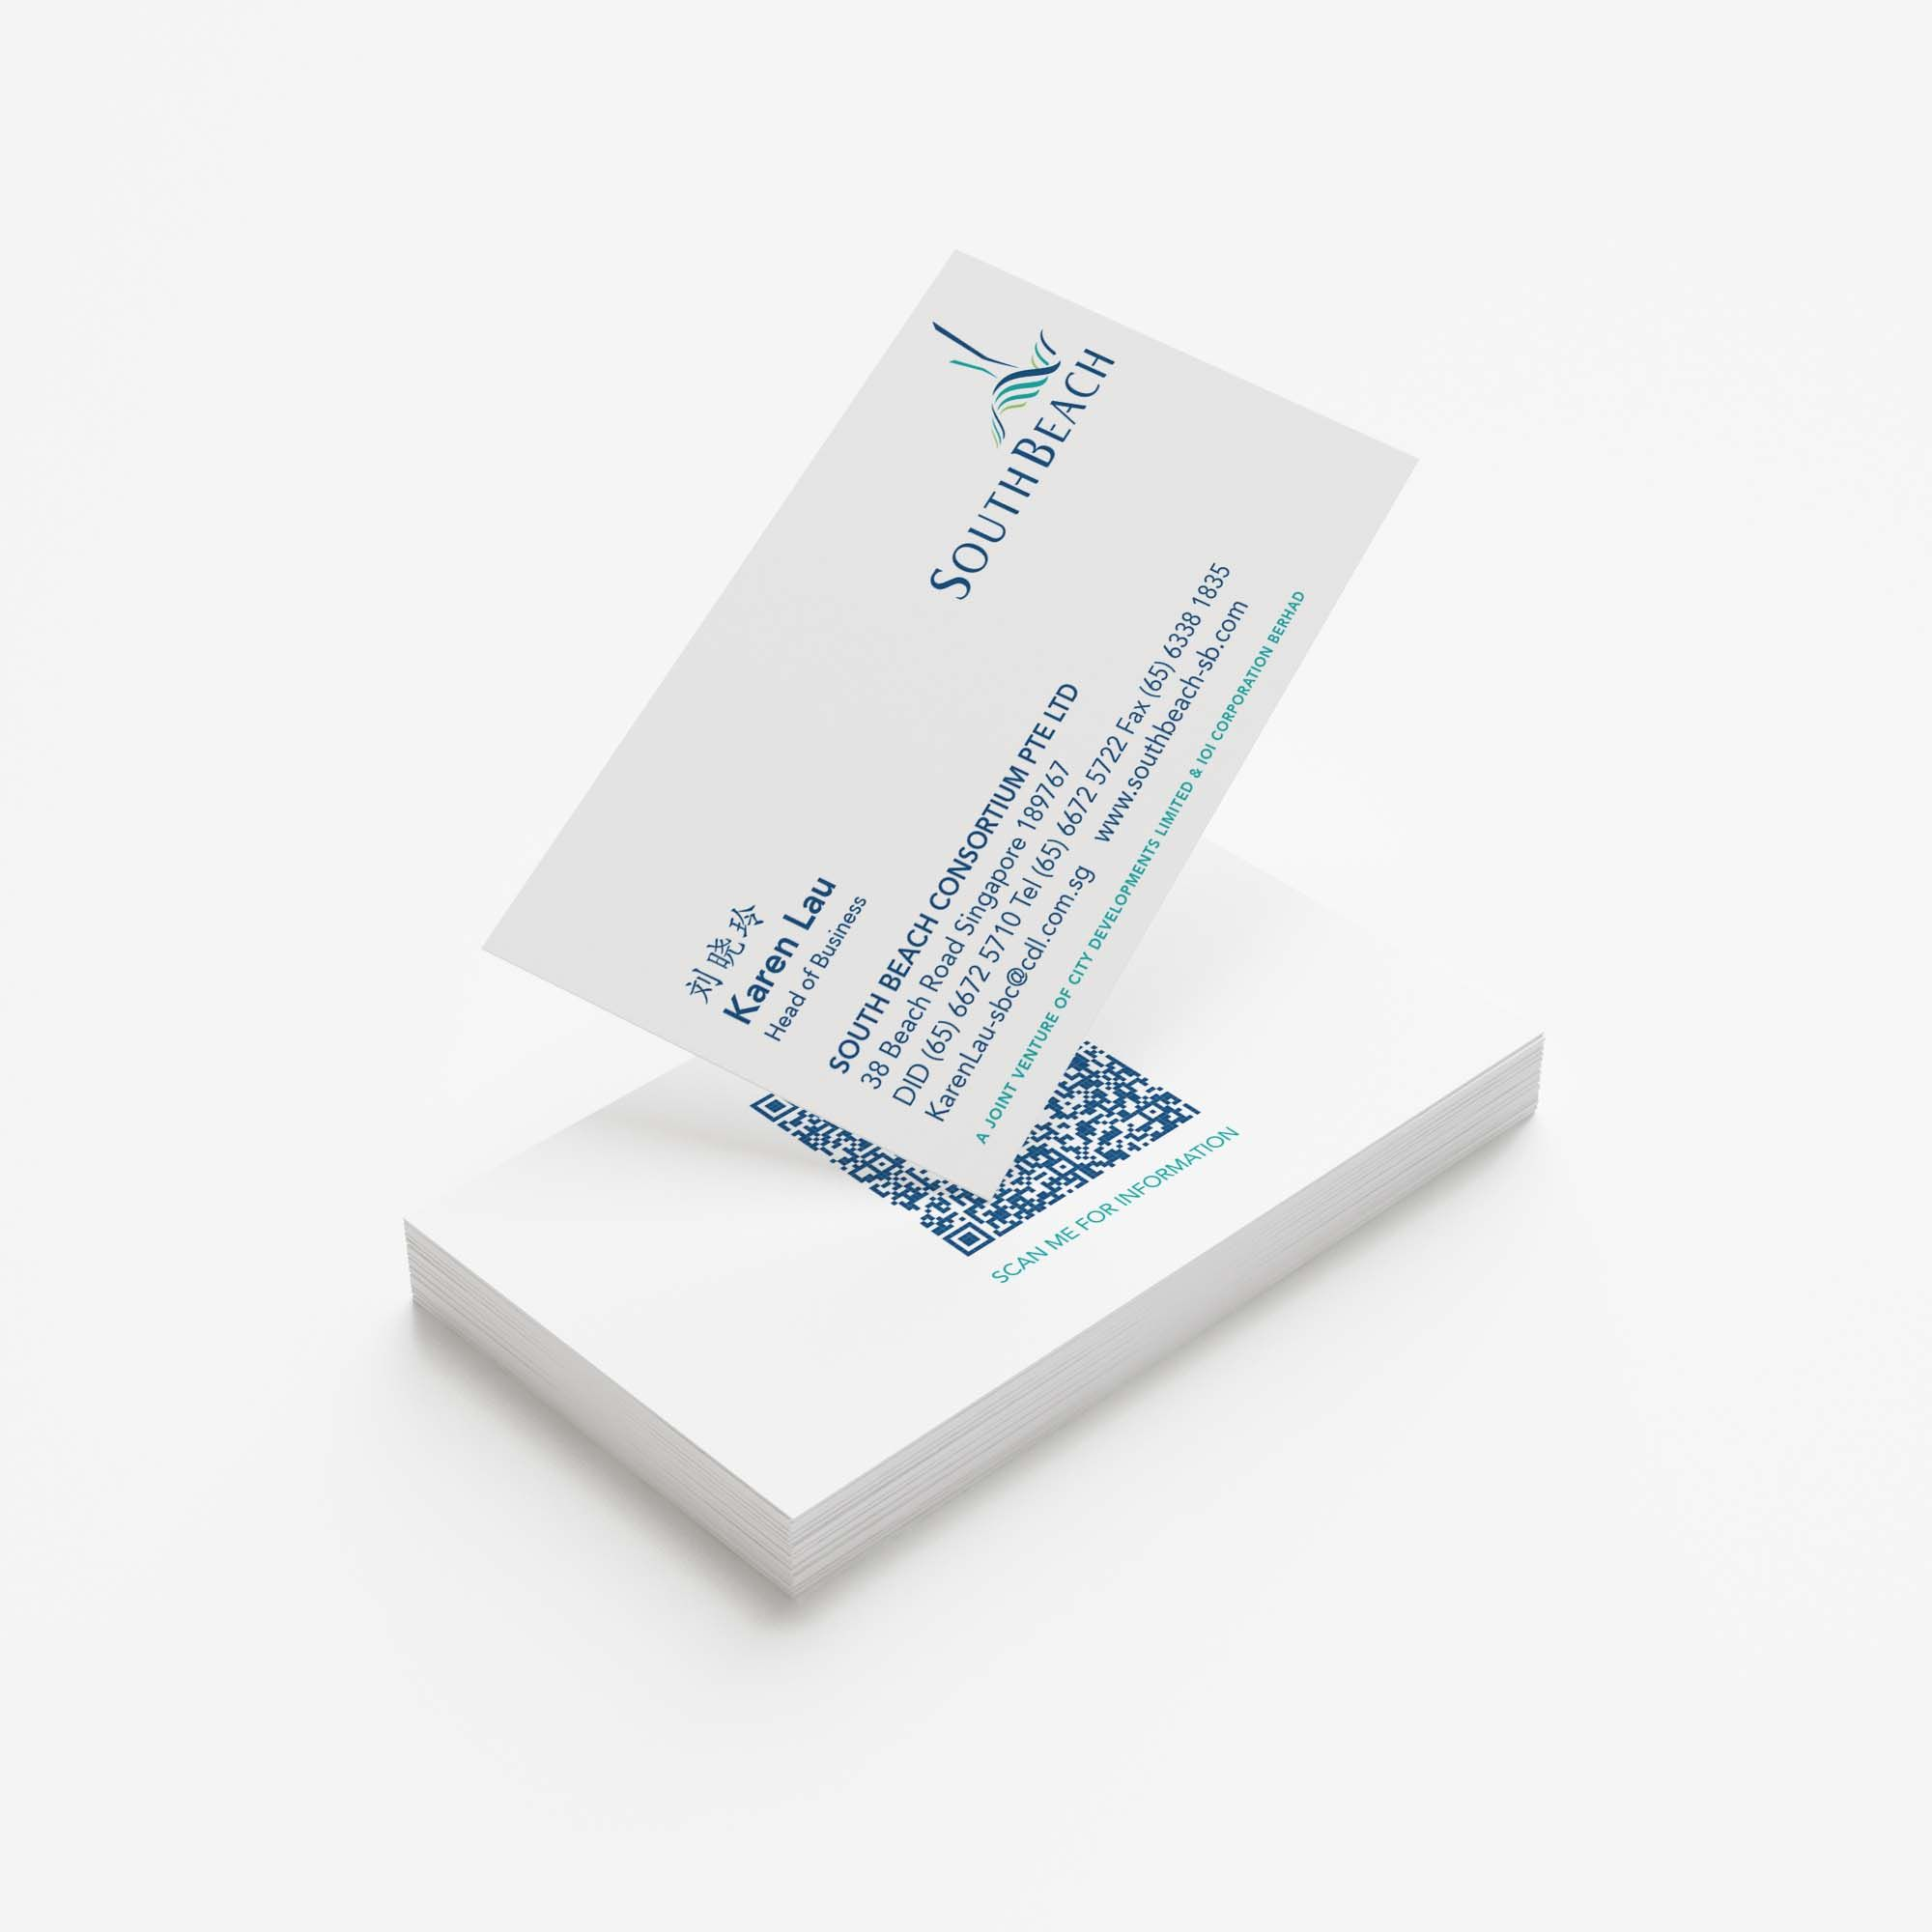 Corporate name cards that will impress your clients and